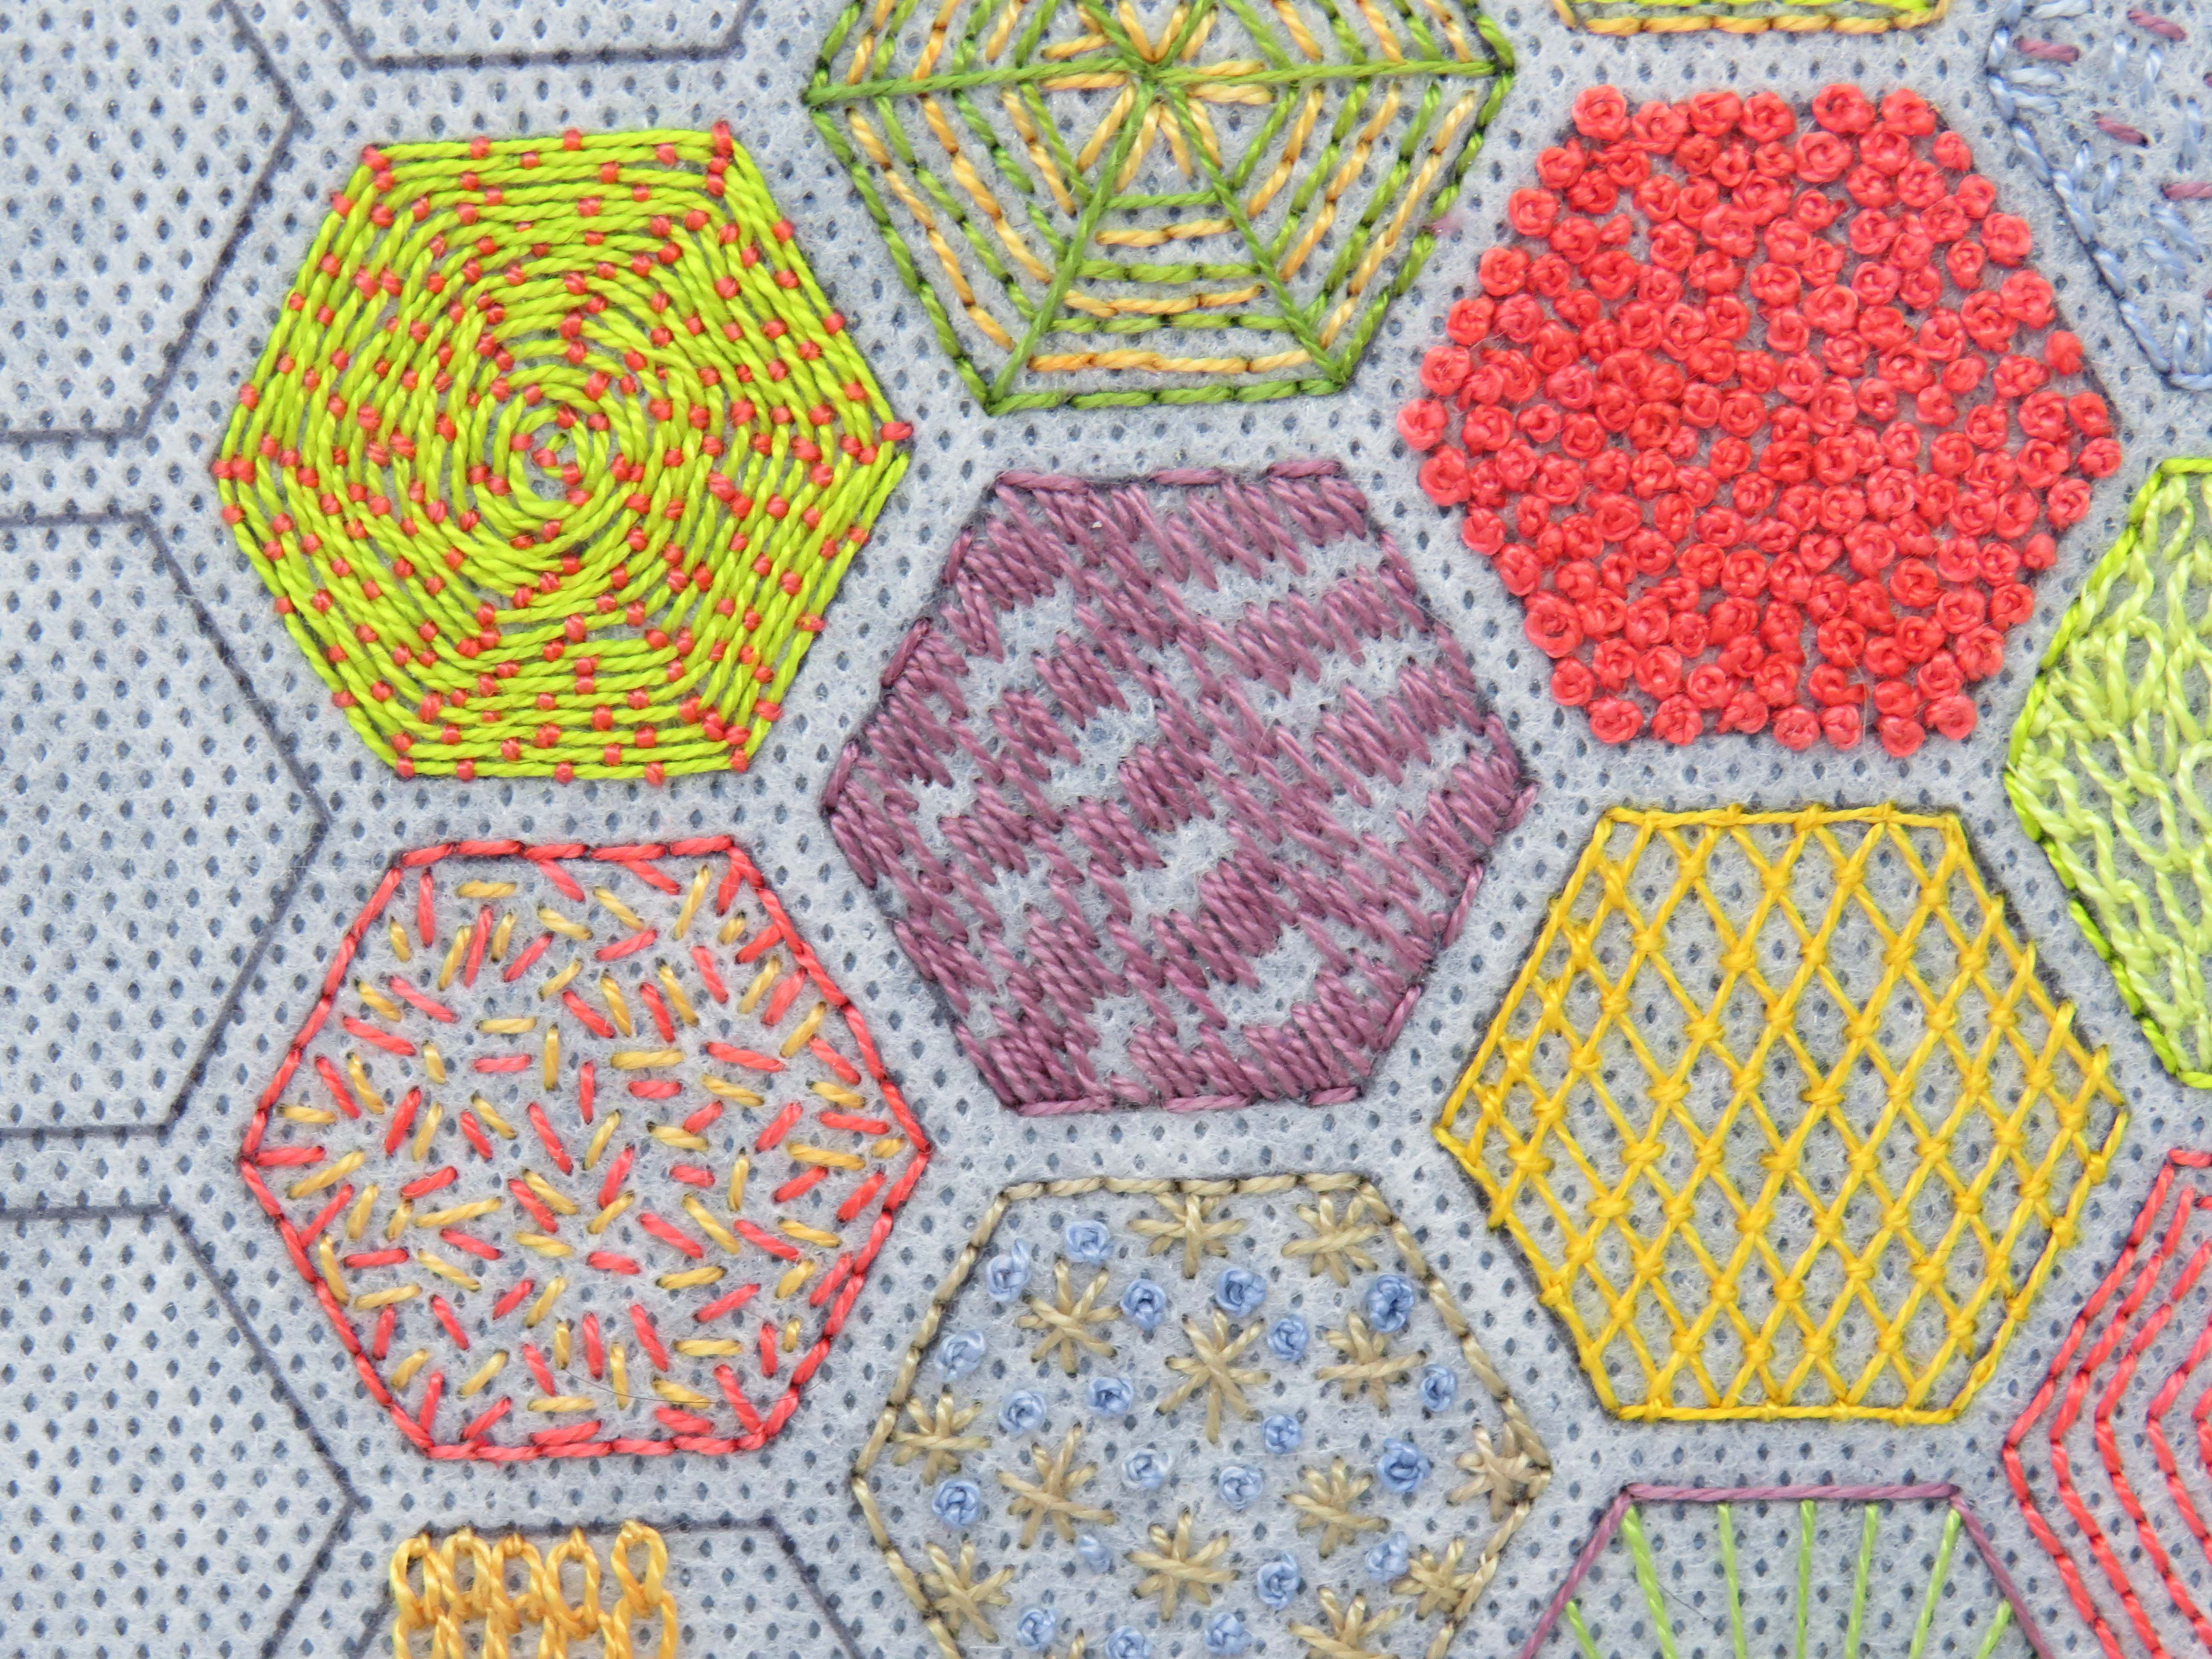 Hexies hand embroidery pattern by stitchdoodles